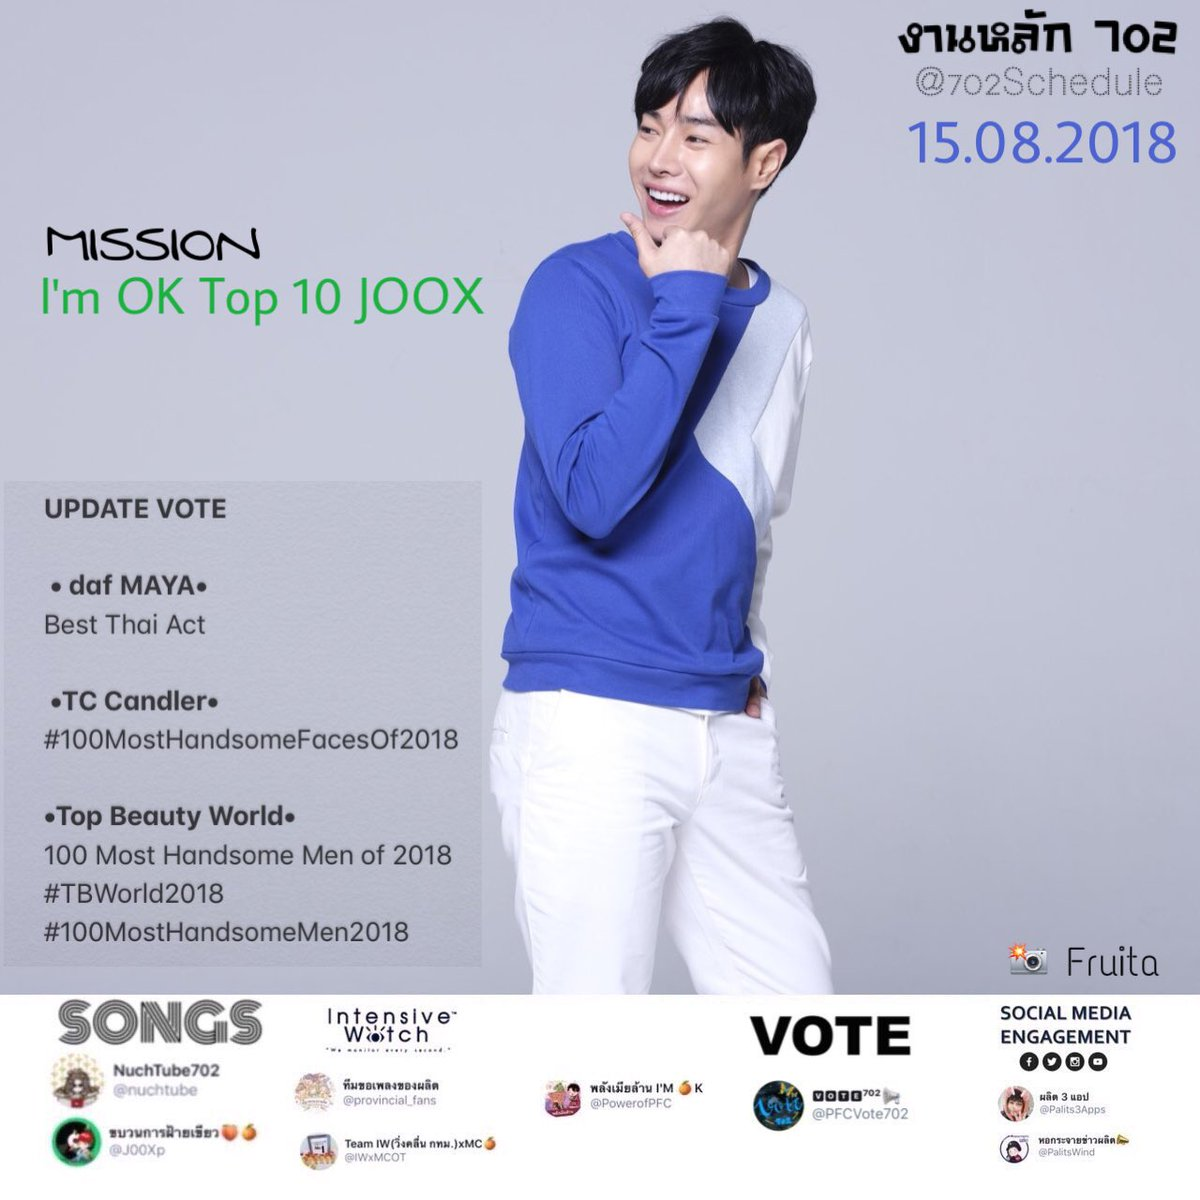 15.08.2018  MISSIONS #IMOK • Top 10 JOOX  UPDATE VOTE • daf MAYA• Best Thai Act   •TC Candler• #100MostHandsomeFacesOf2018  •Top Beauty World• 100 Most Handsome Men of 2018 #TBWorld2018 #100MostHandsomeMen2018  PINKY GLOW | Centralworld #เป๊กผลิตโชค<br>http://pic.twitter.com/4VnJIMIXiu